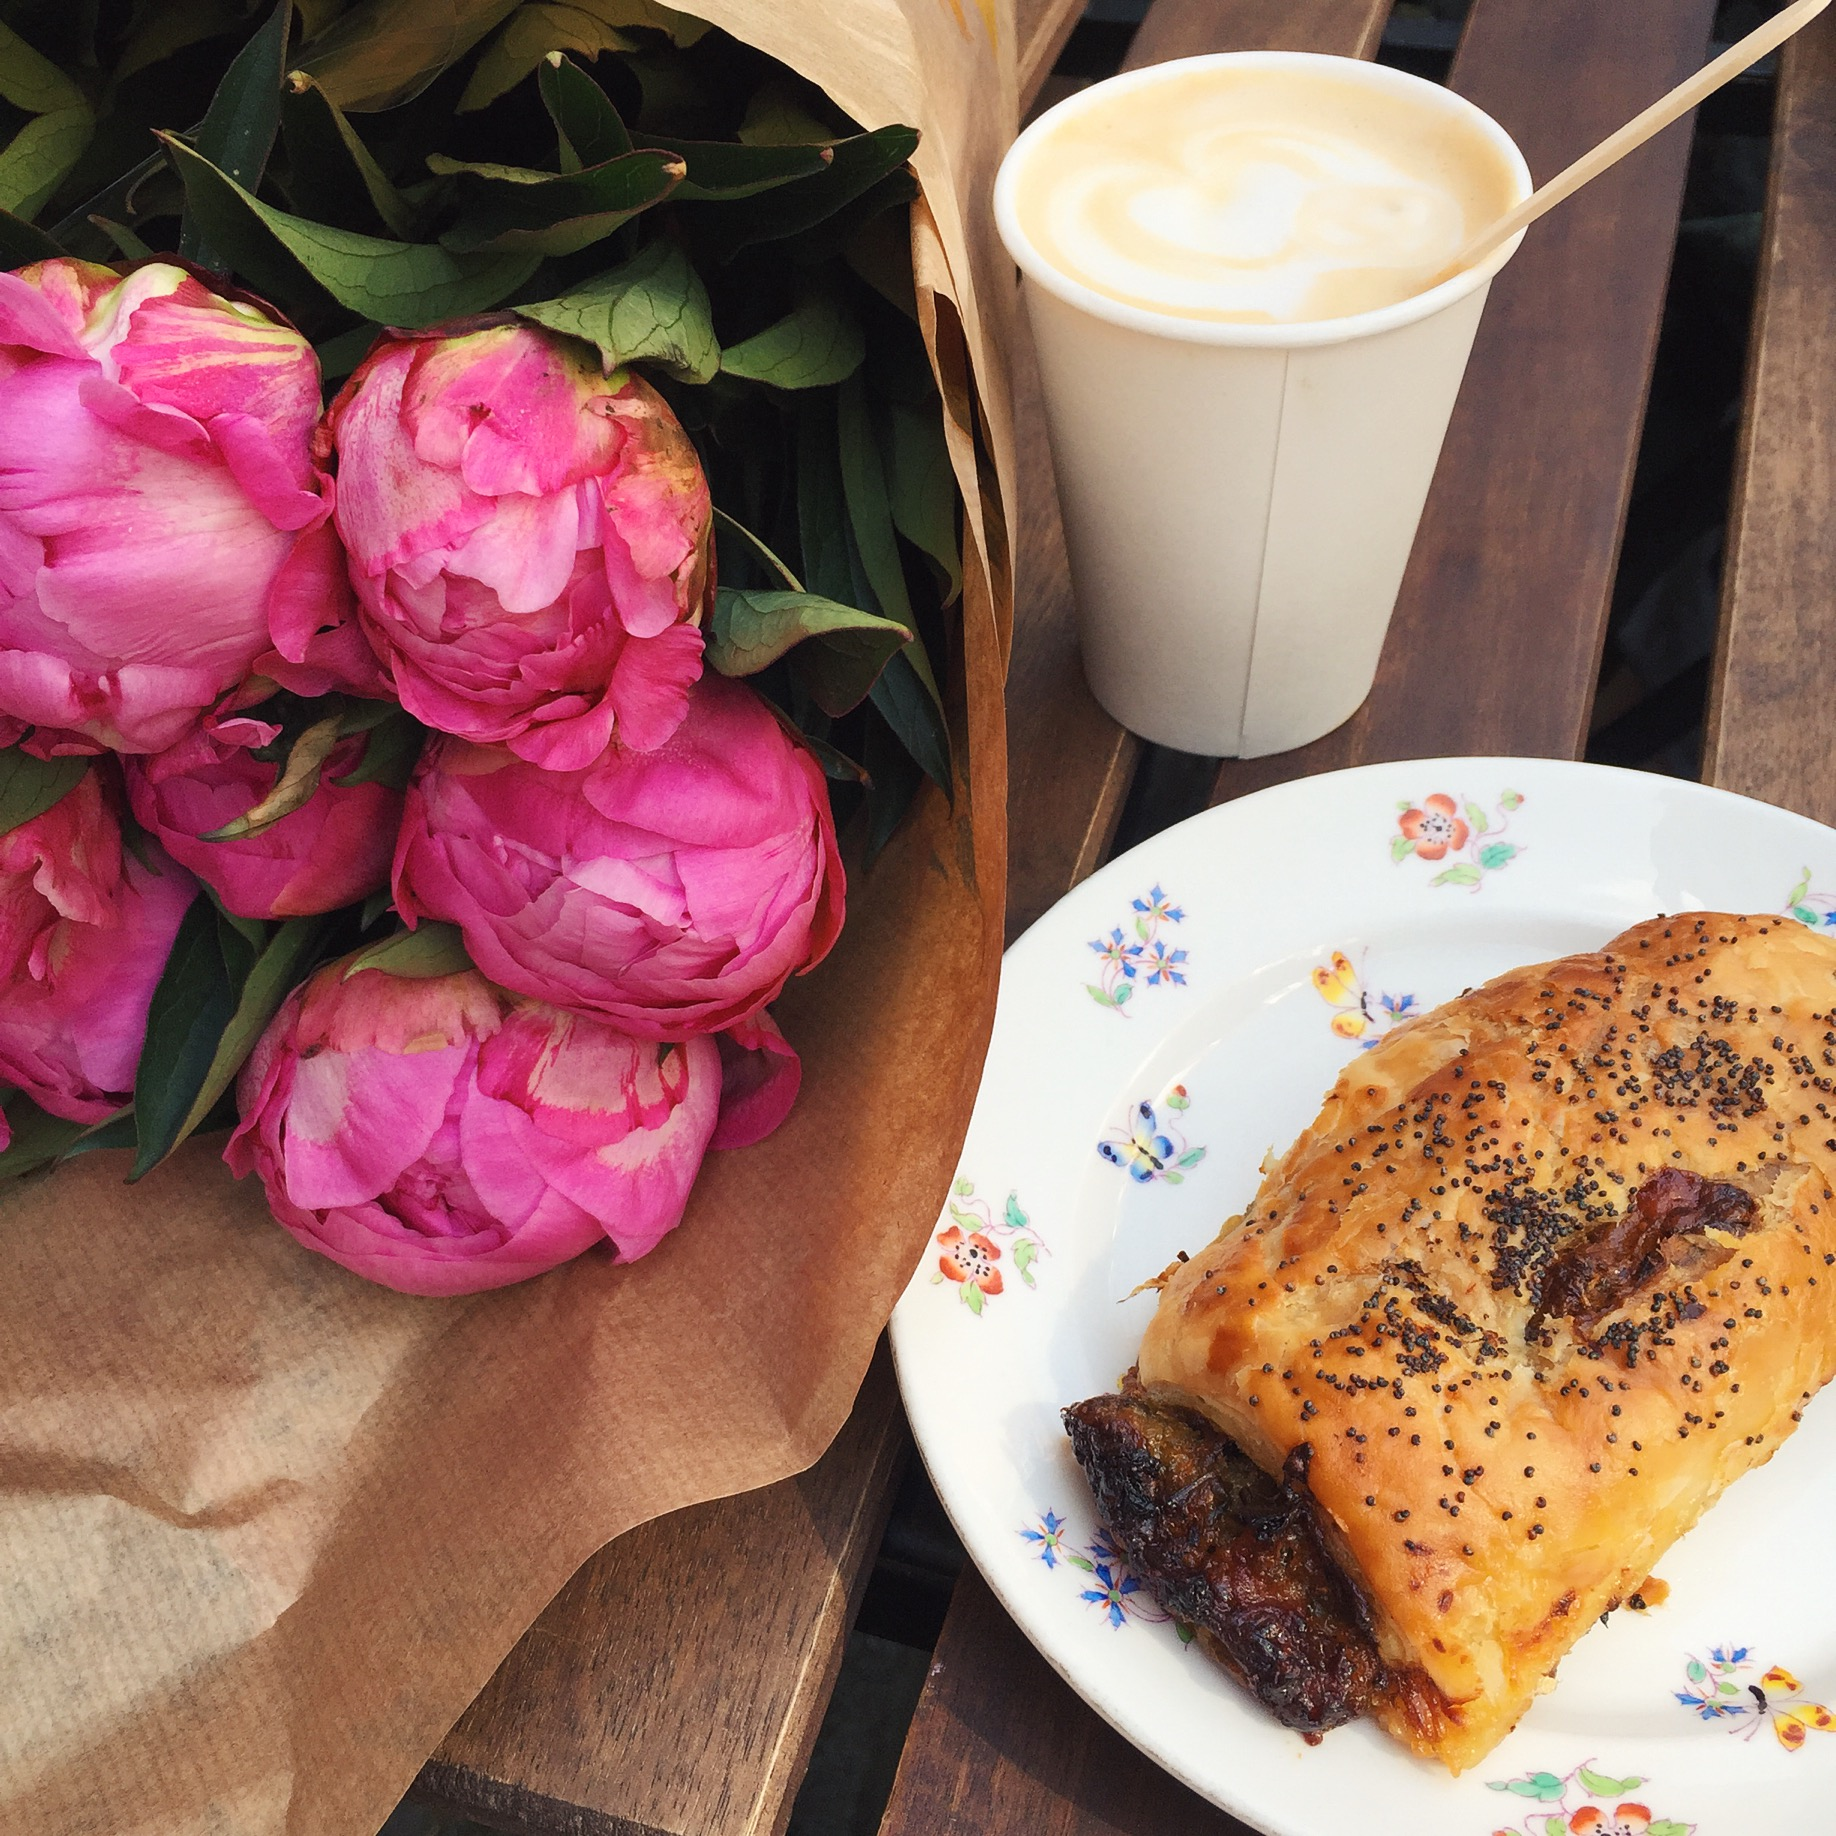 Lily Vanilli at Columbia Road Flower Market | The Style Scribe